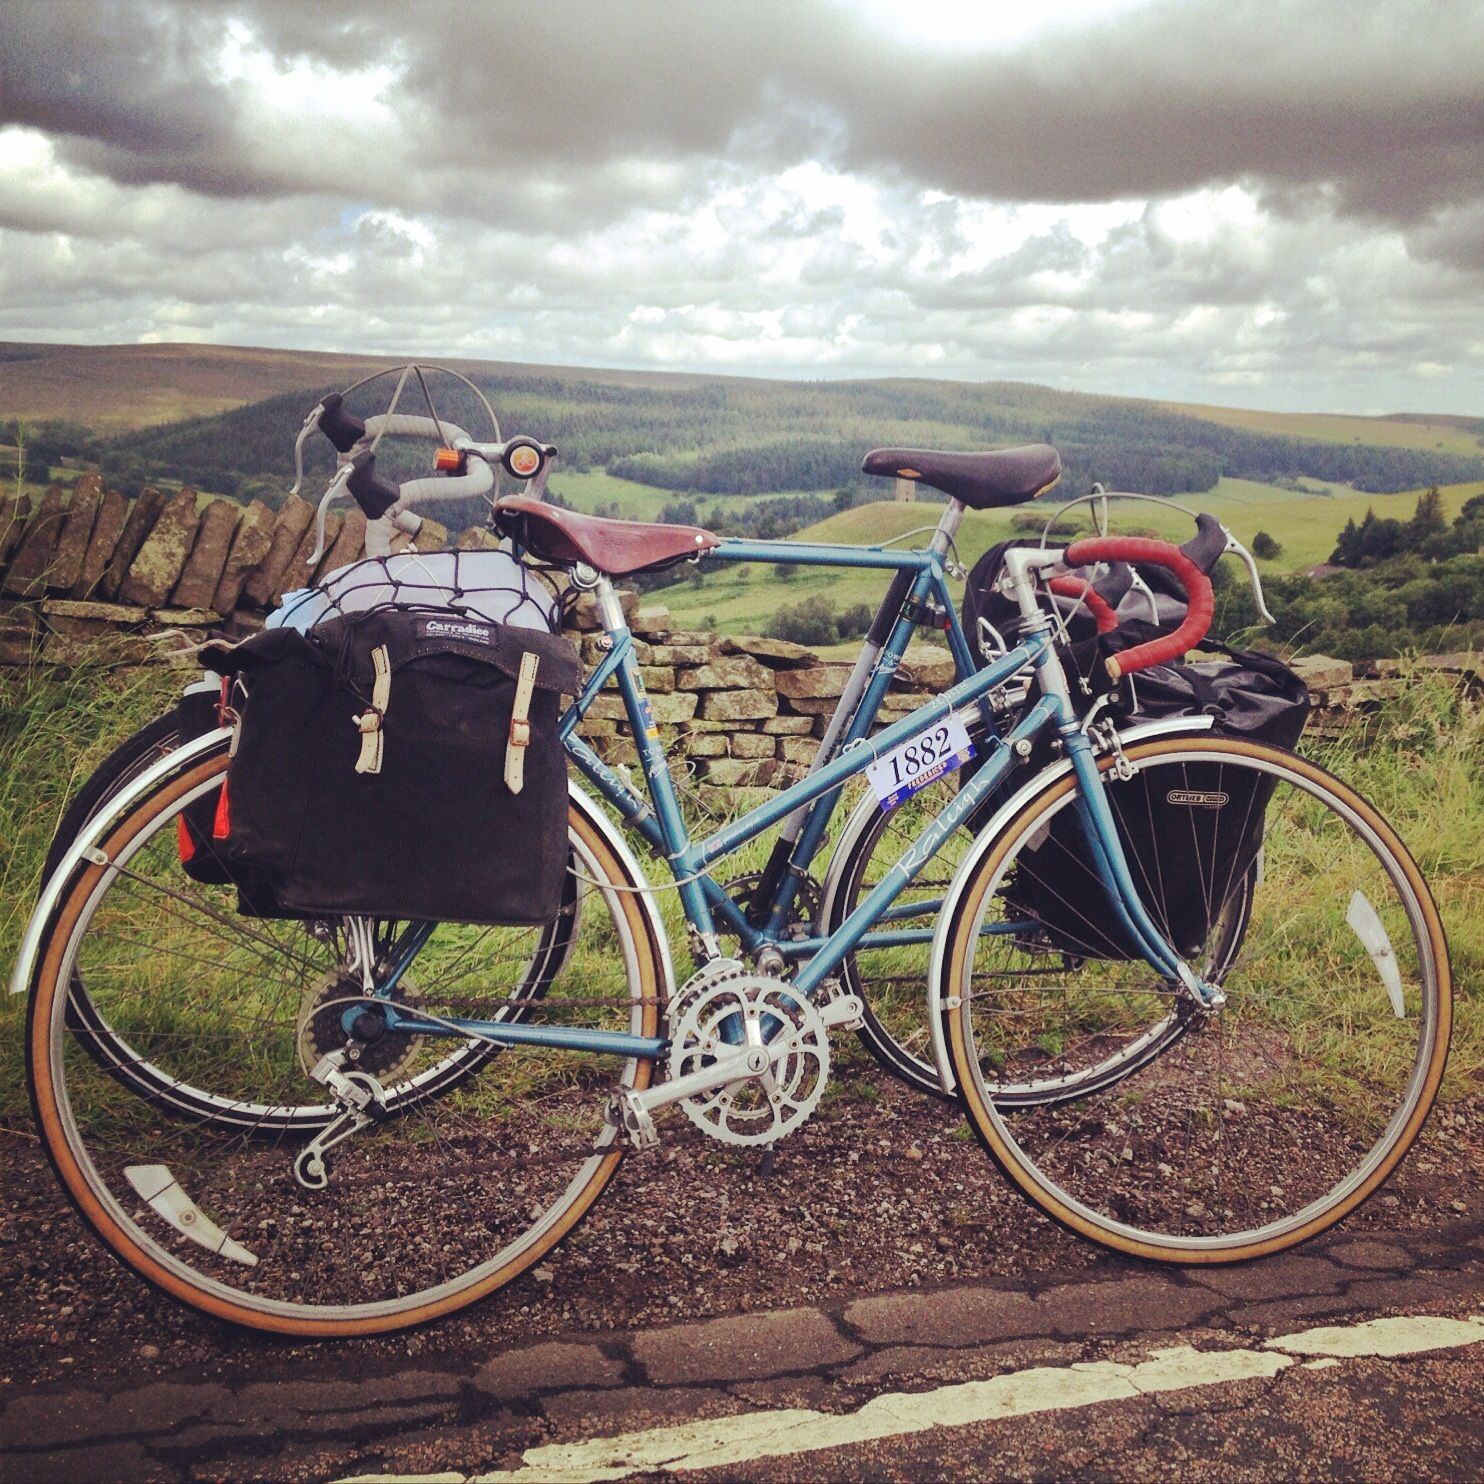 Hire A Matching His And Hers Raleigh Zenith For A Romantic Journey Of Discovery Glorydays Cc British Steel Vintage Bicycles Vintage Bikes